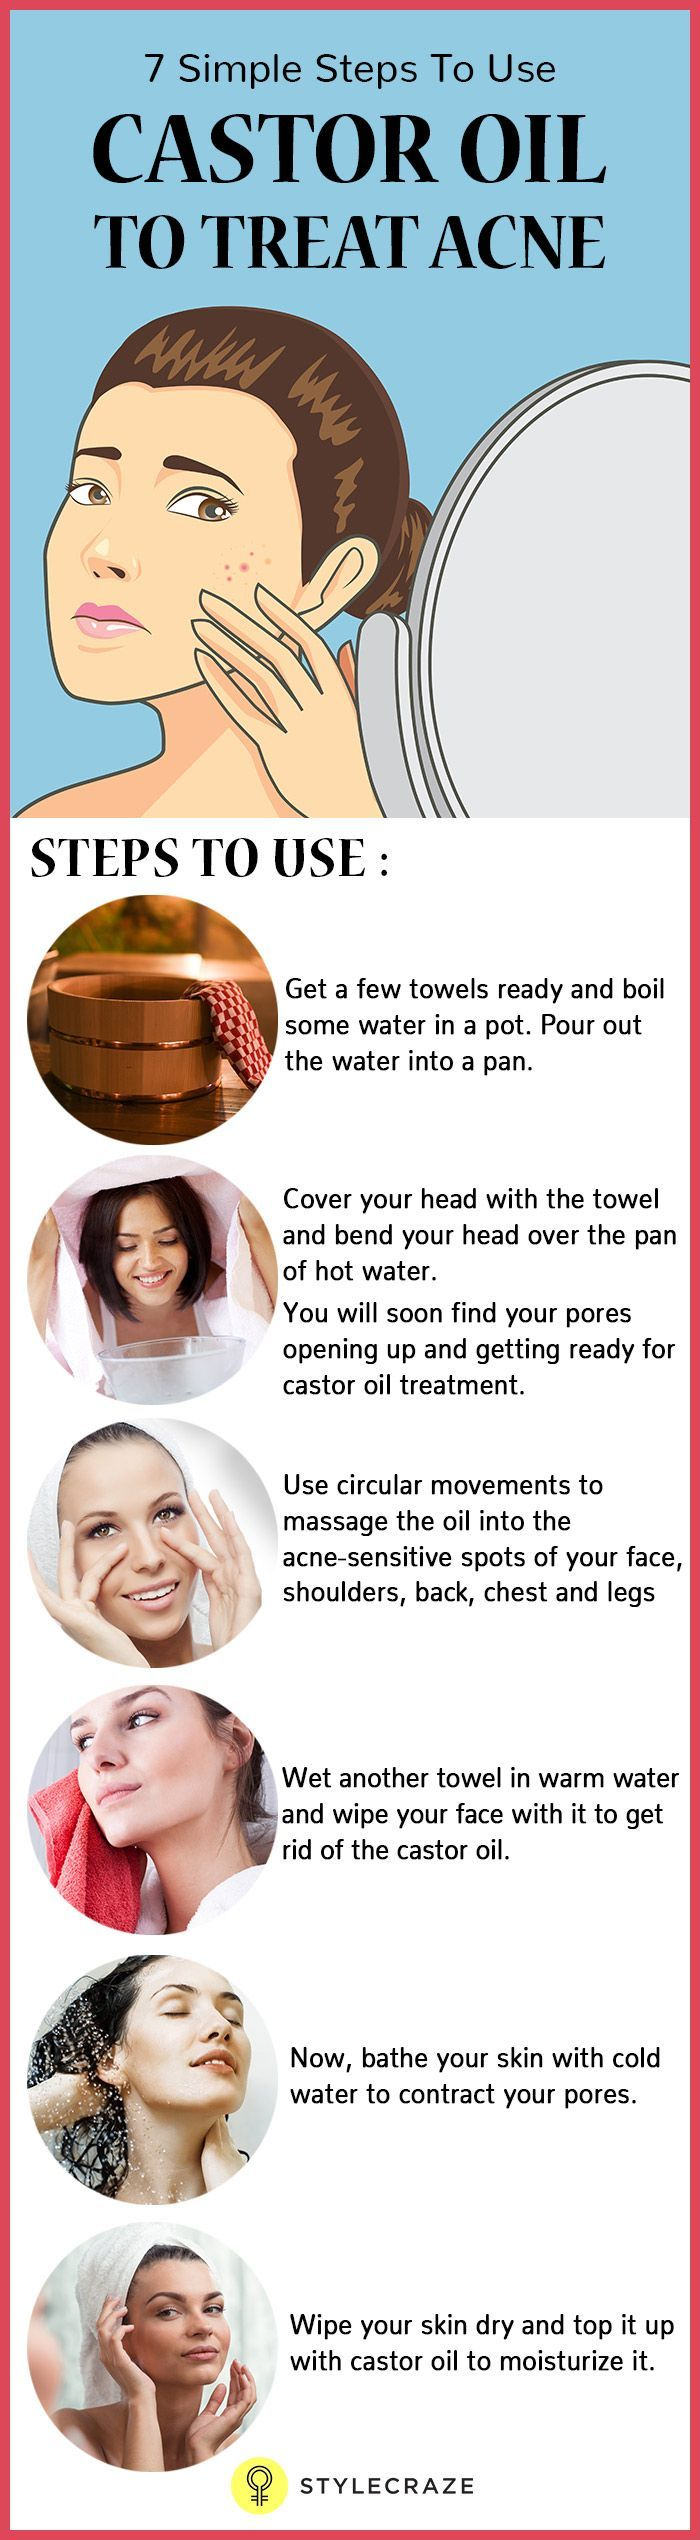 10 best castor oil Using castor oil has stood the ages caring for the skin and triggering hair increase an incredible way. The love for castor oil treatment has led to the robust growth in the castor oil production business, and currently, many brands exist. But first, opt for castor oil? Many uses tend to be documented and here's a few of the most common uses -Moisturisation of the skin and hair -Stimulation of regrowth and reversal of hair loss -Fighting off scalp...